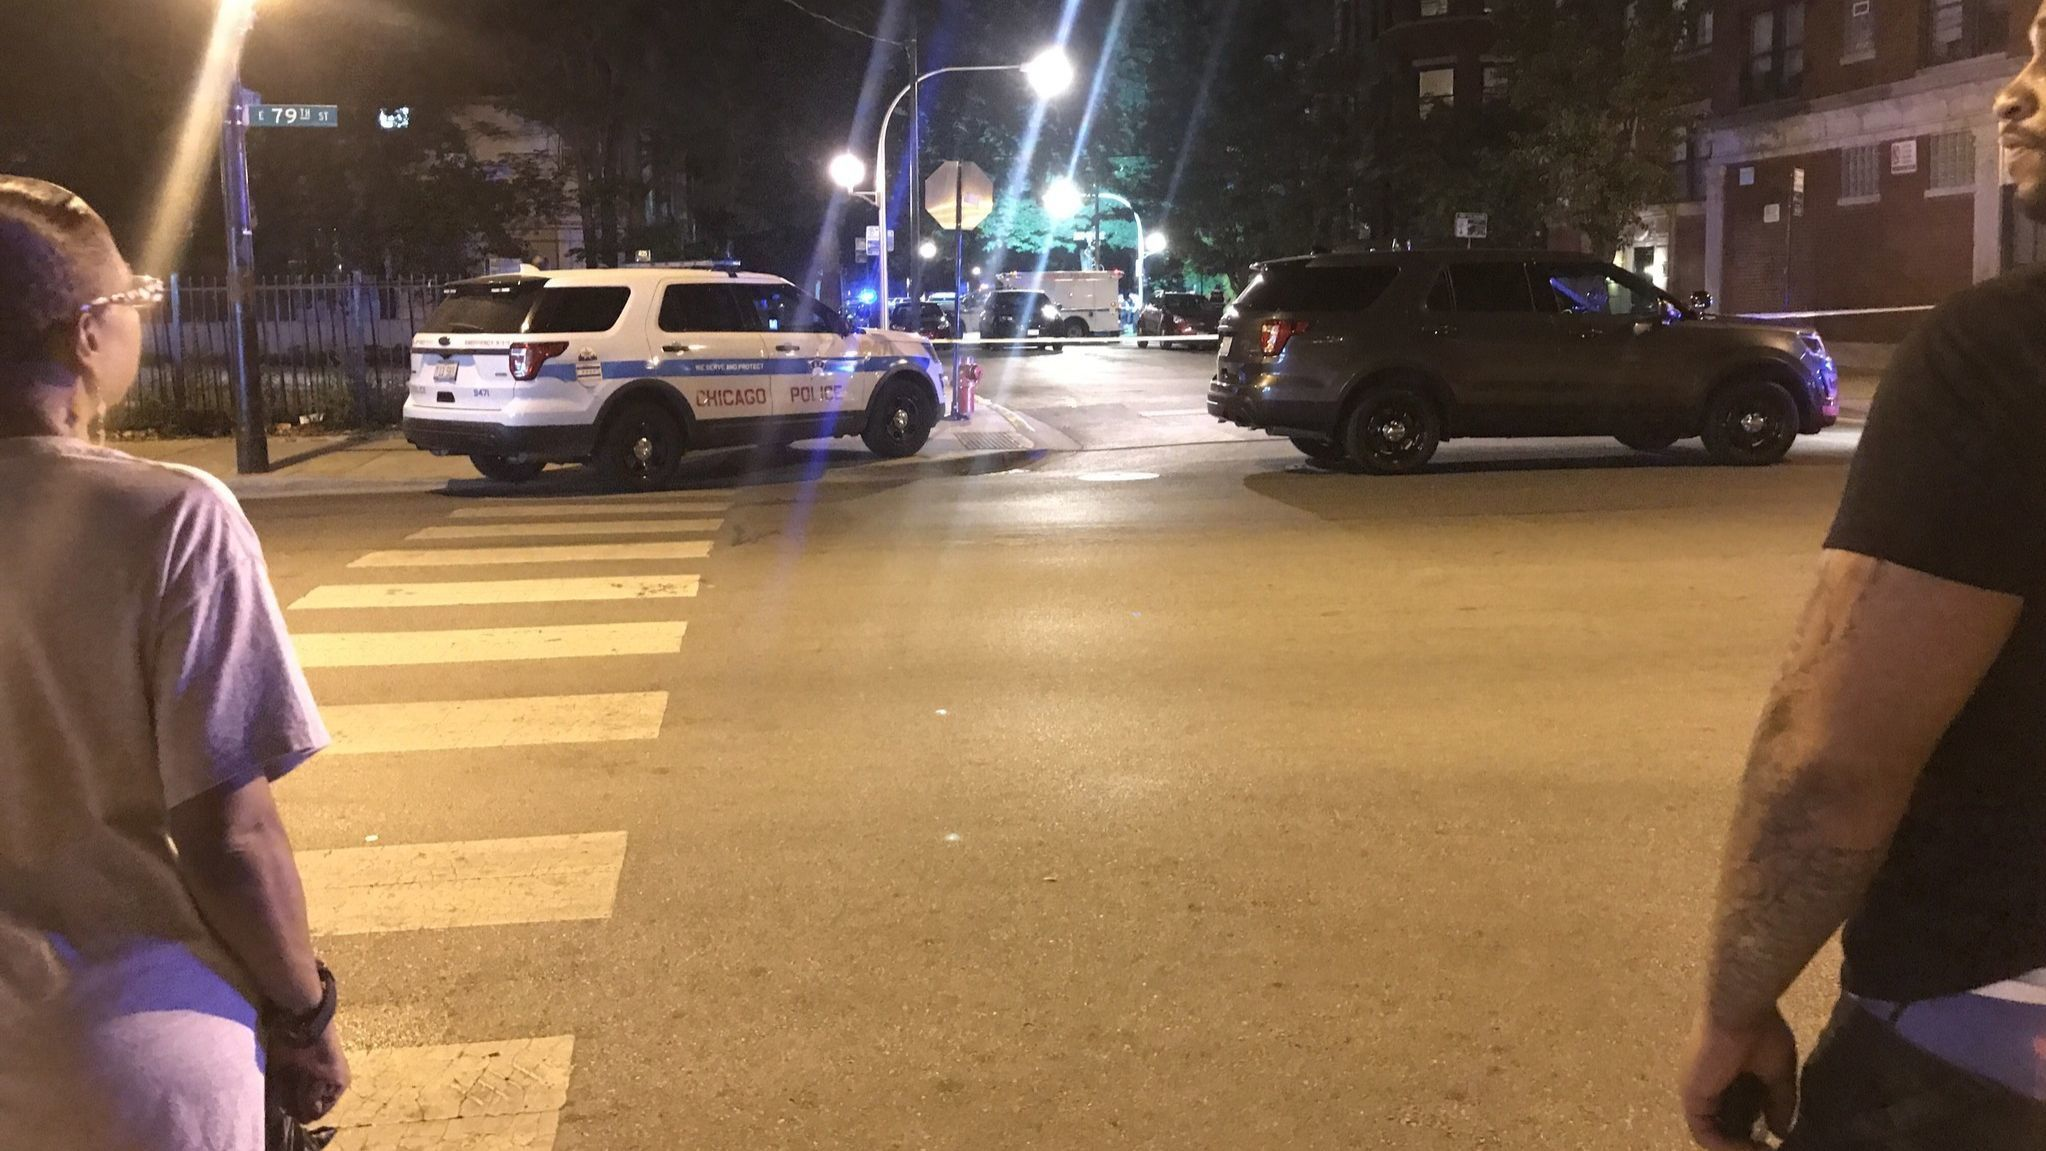 Man in custody after exchanging gunfire with police in South Chicago | Chicago Tribune